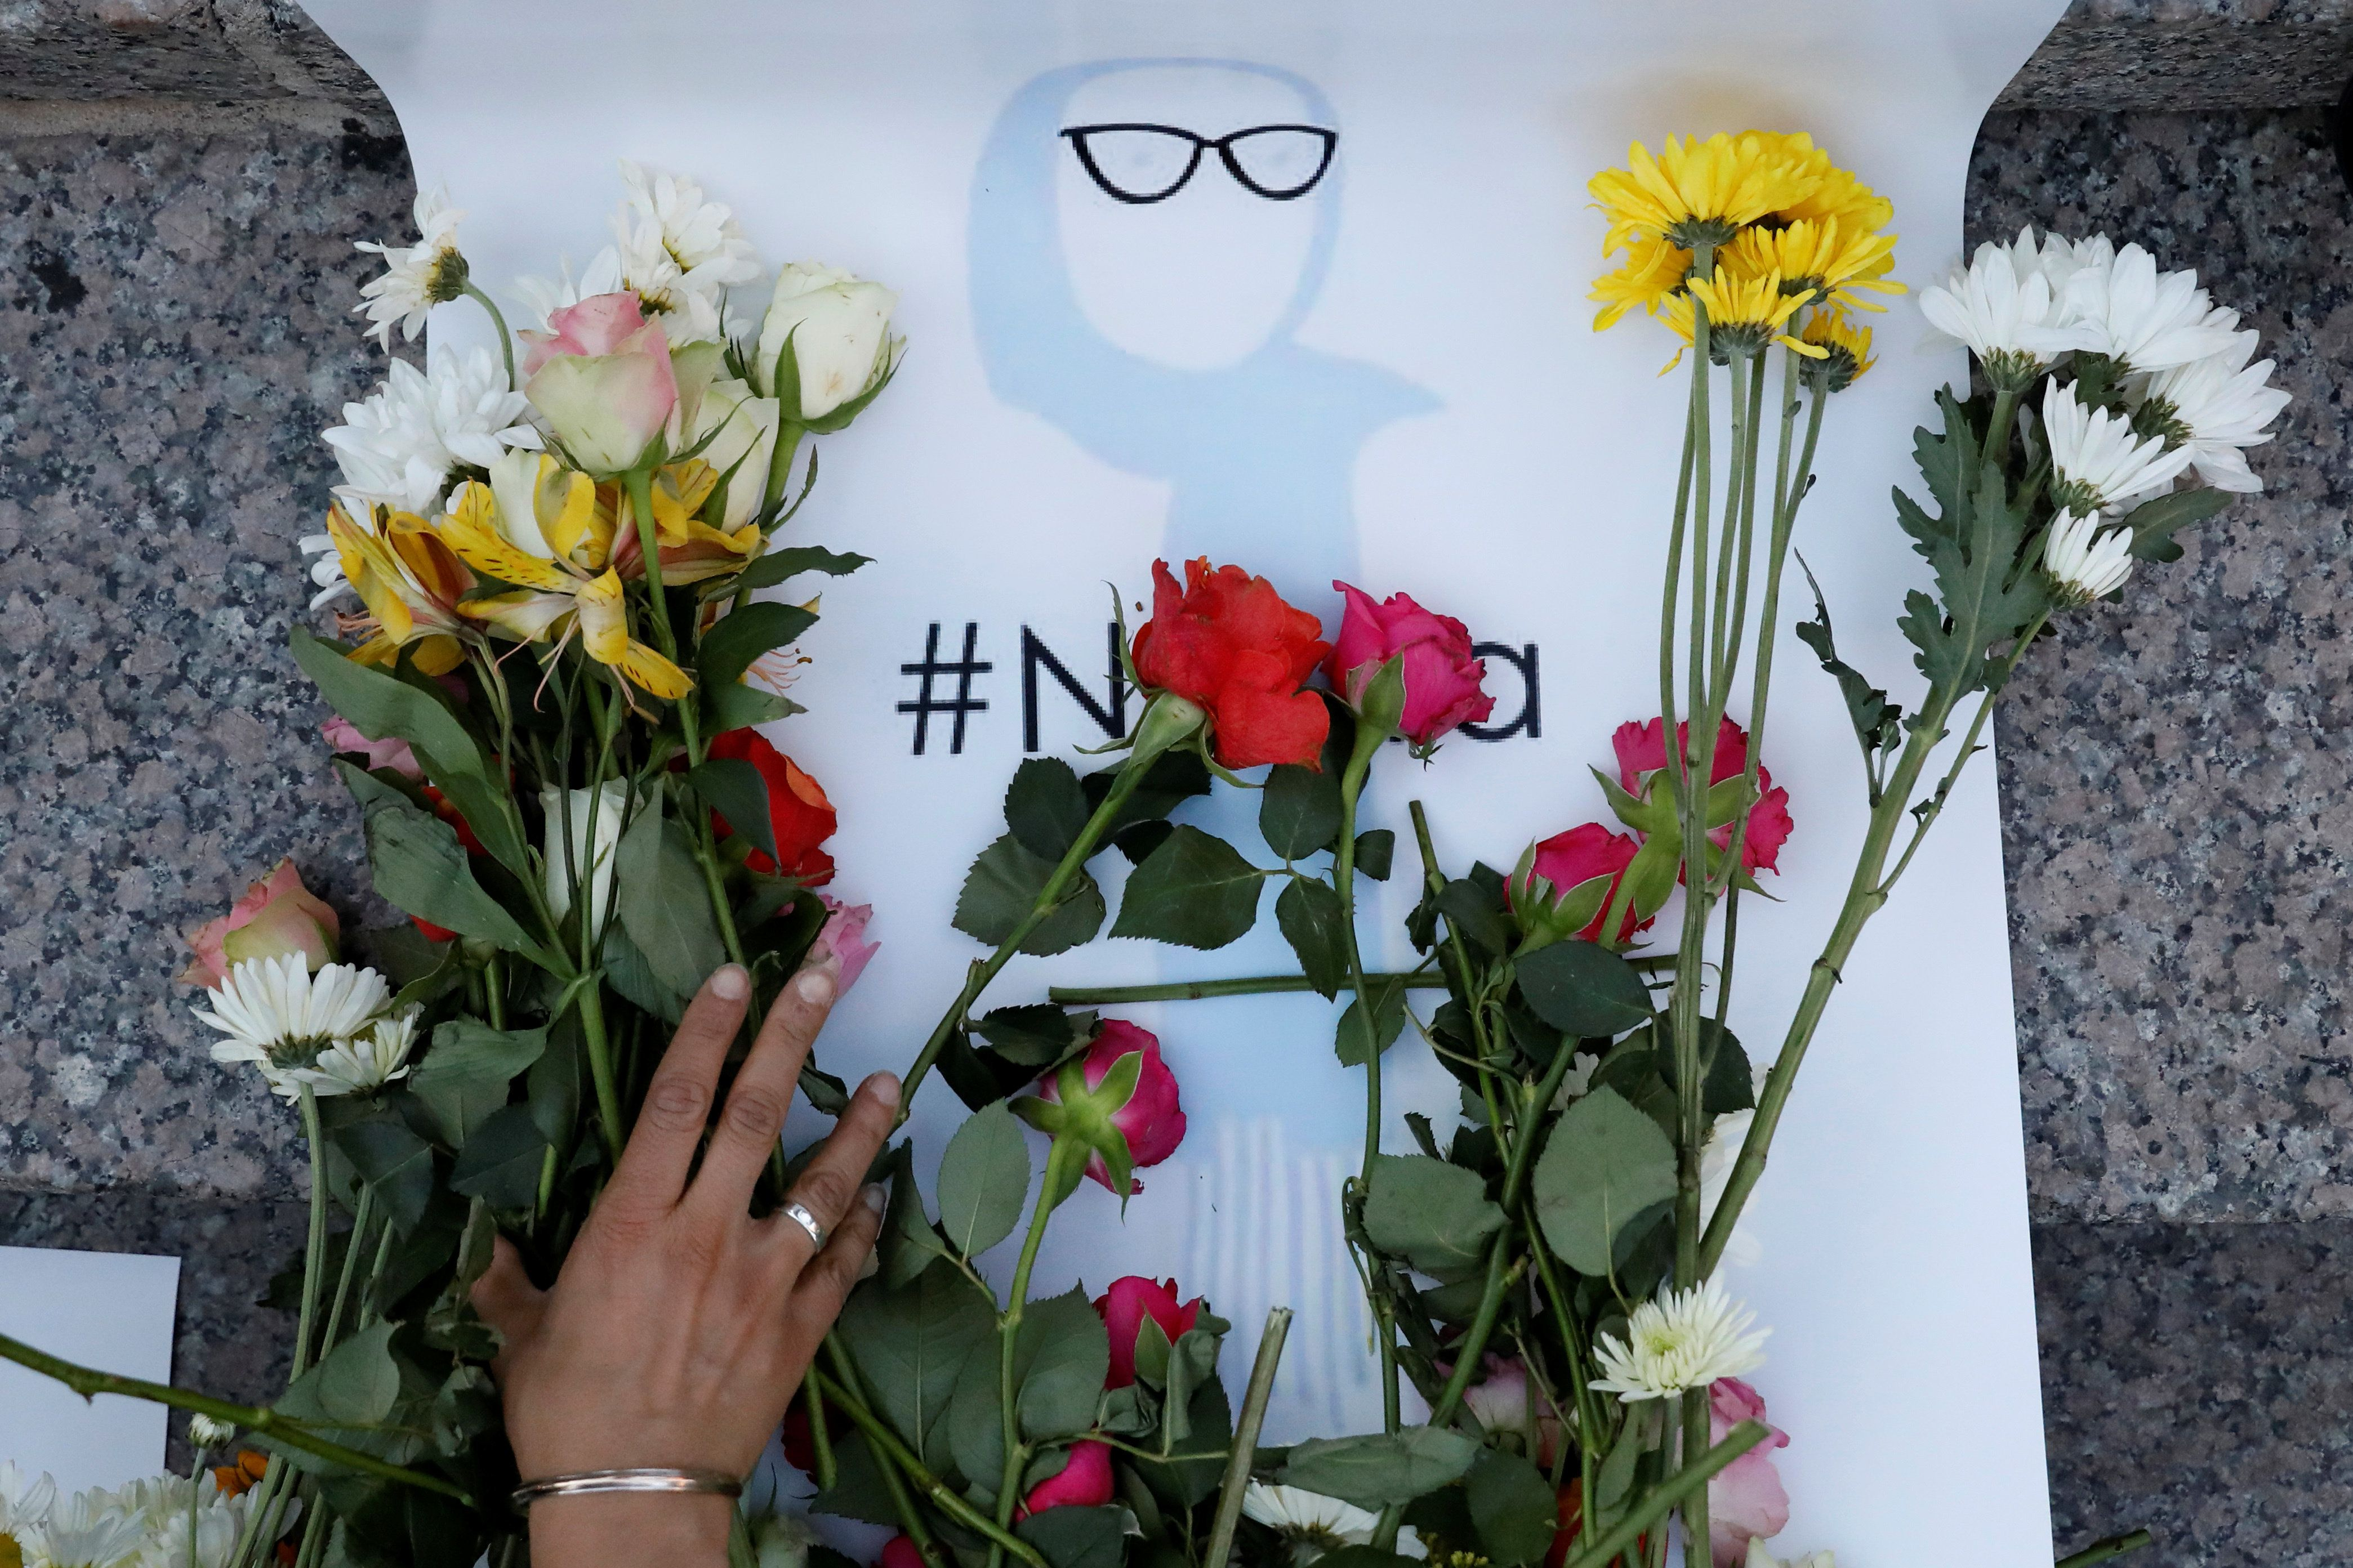 An attendee leaves flowers for Nabra Hassanen, a teenage Muslim girl killed by a bat-wielding motorist near a Virginia mosque